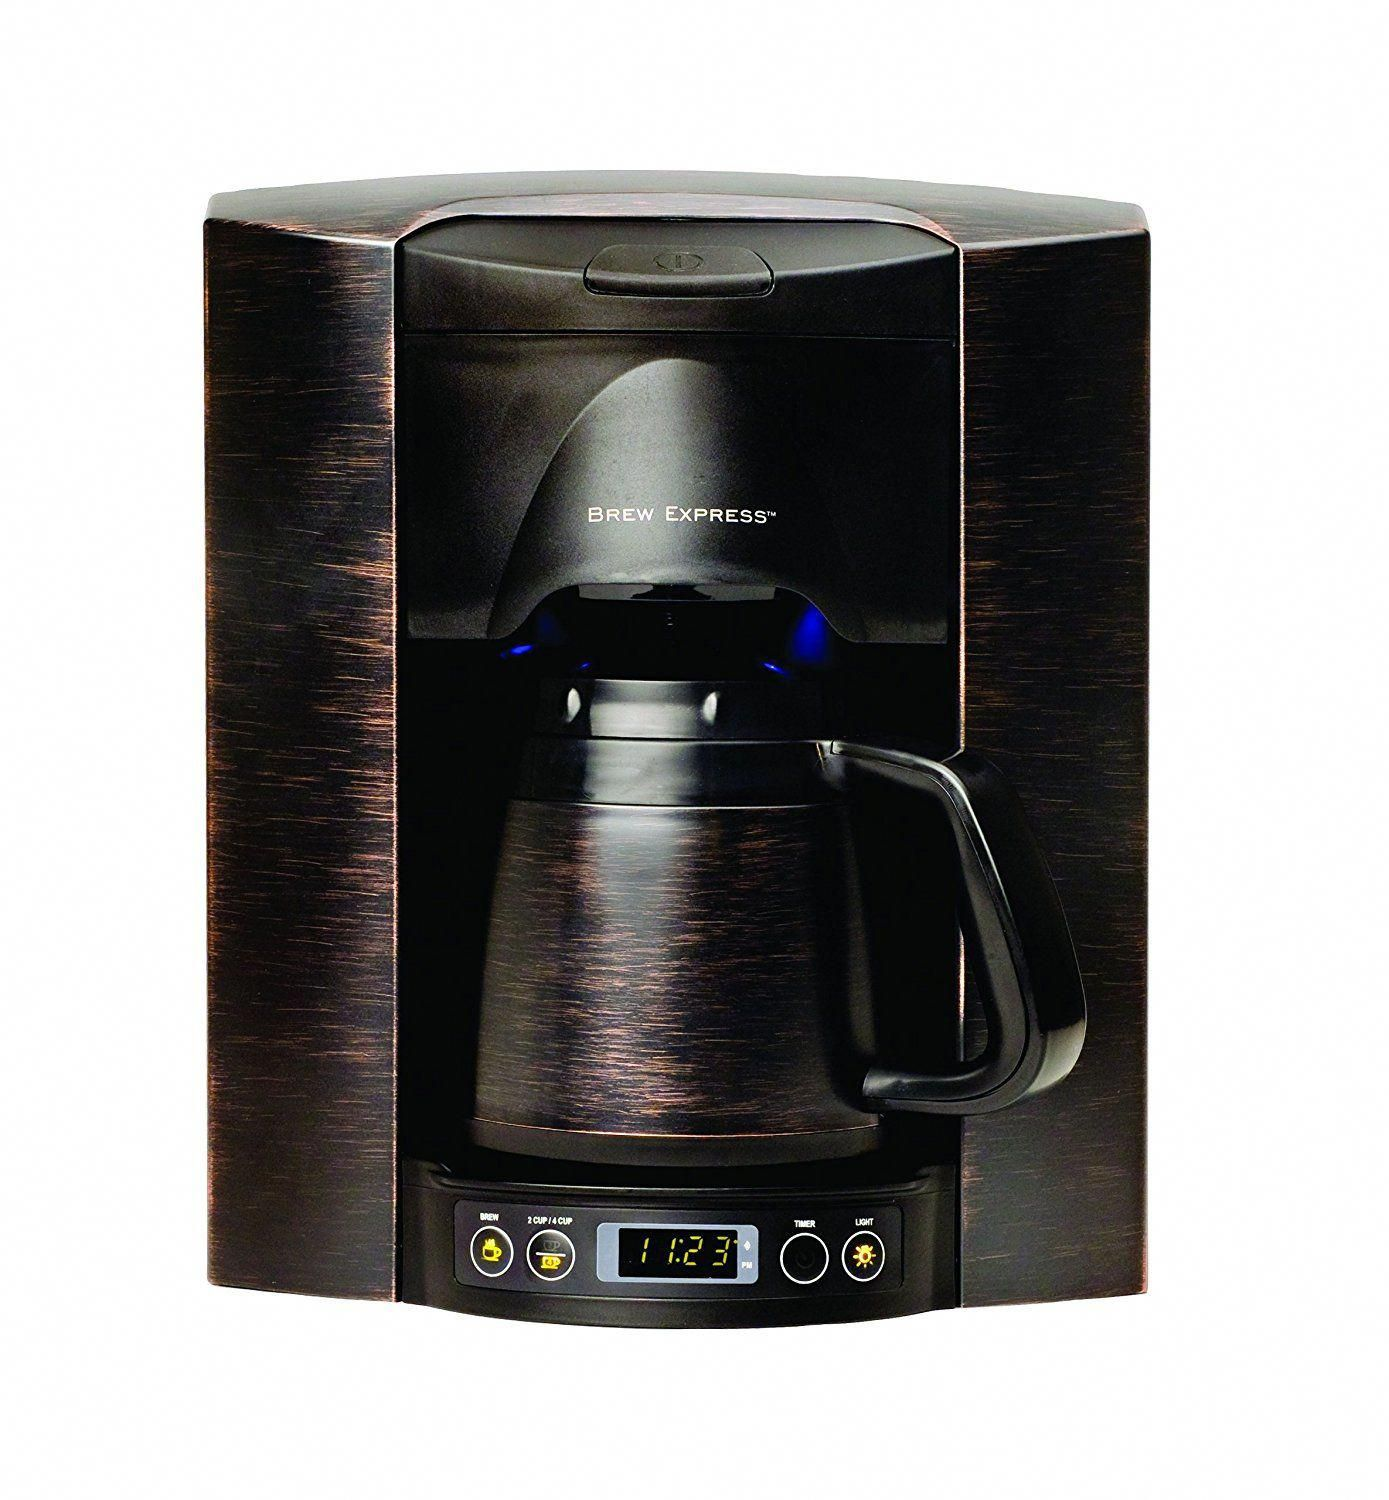 Brew Express Be 104r 144a 4 Cup Built In Coffee System Bronze Hario Syphon Next Nxa 5